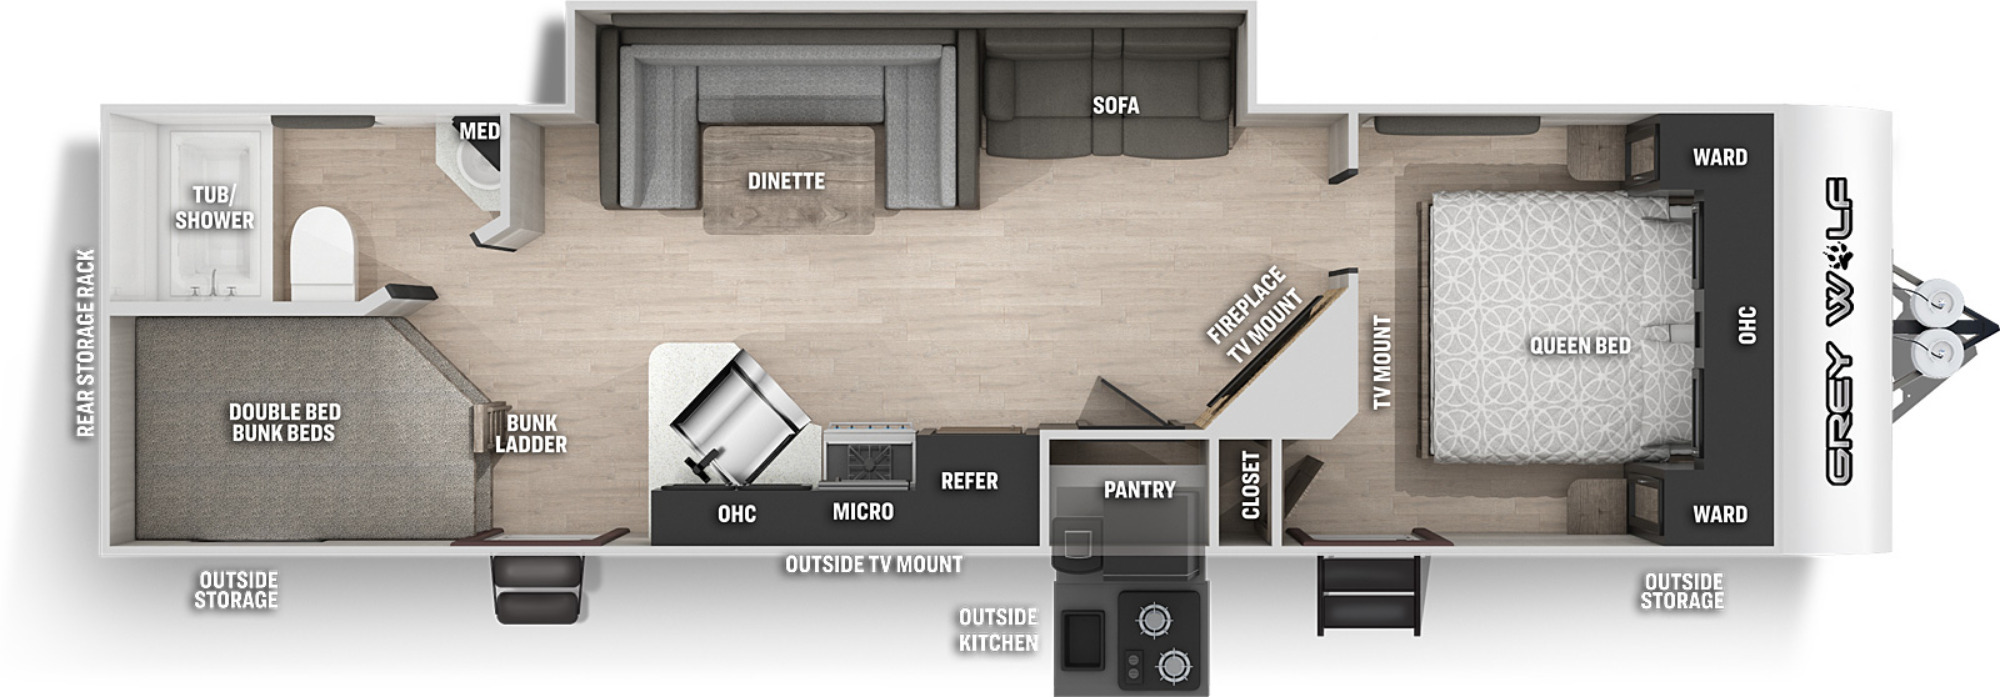 View Floor Plan for 2022 FOREST RIVER GREY WOLF 27DBH